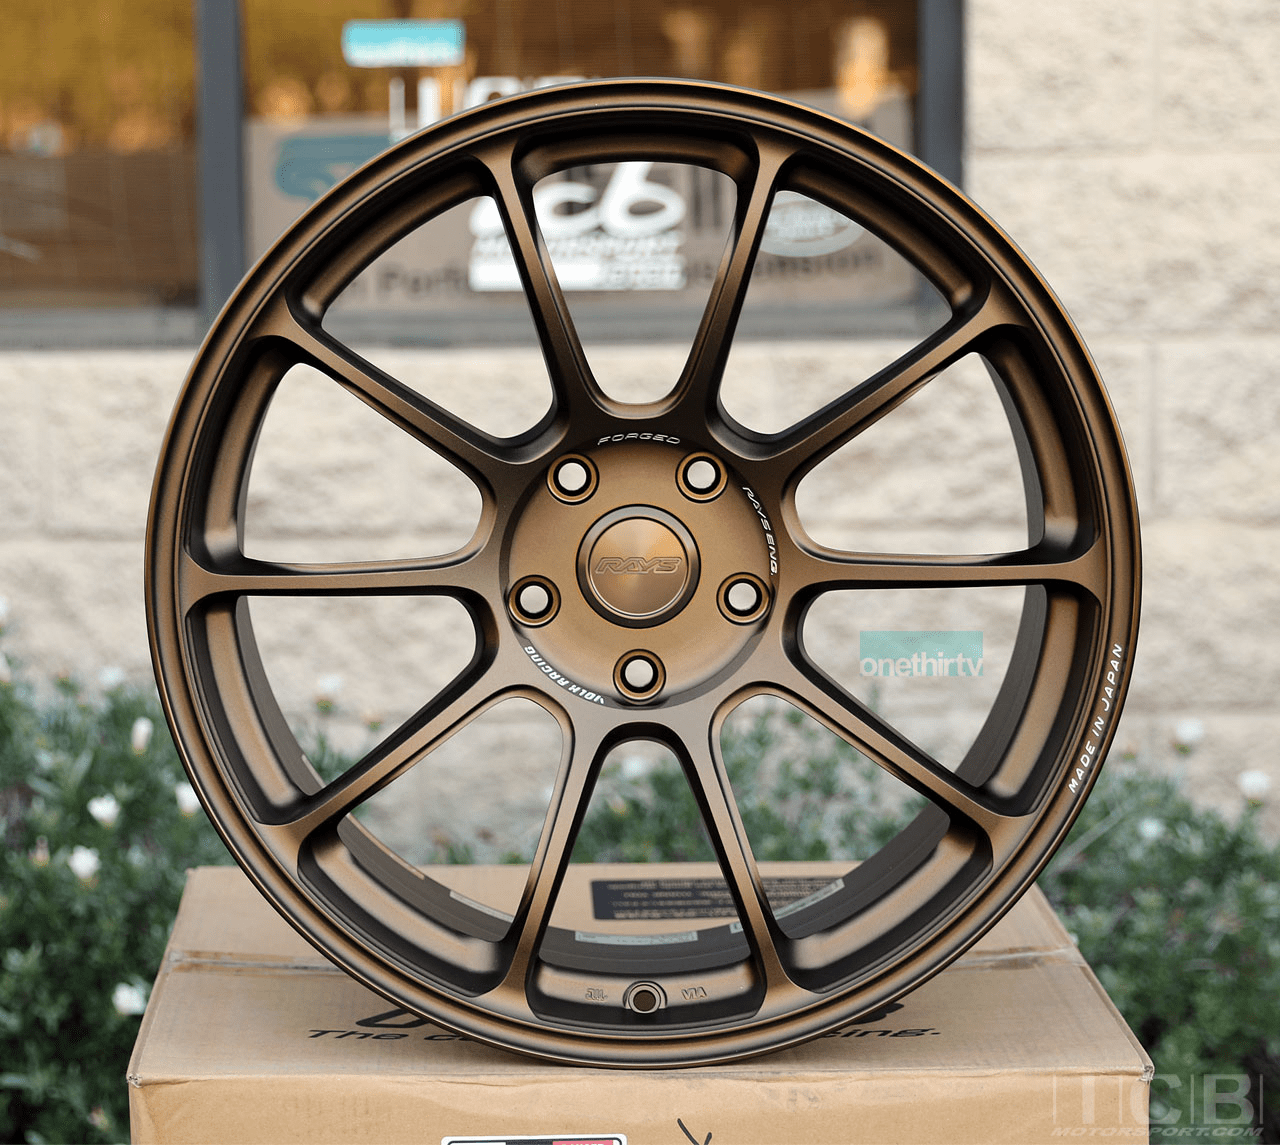 Rays Volk Racing ZE40 Wheels 19X9.5 5X120 +31 Offset Face 3 Concave Face Bronze Civic FK8 CTR